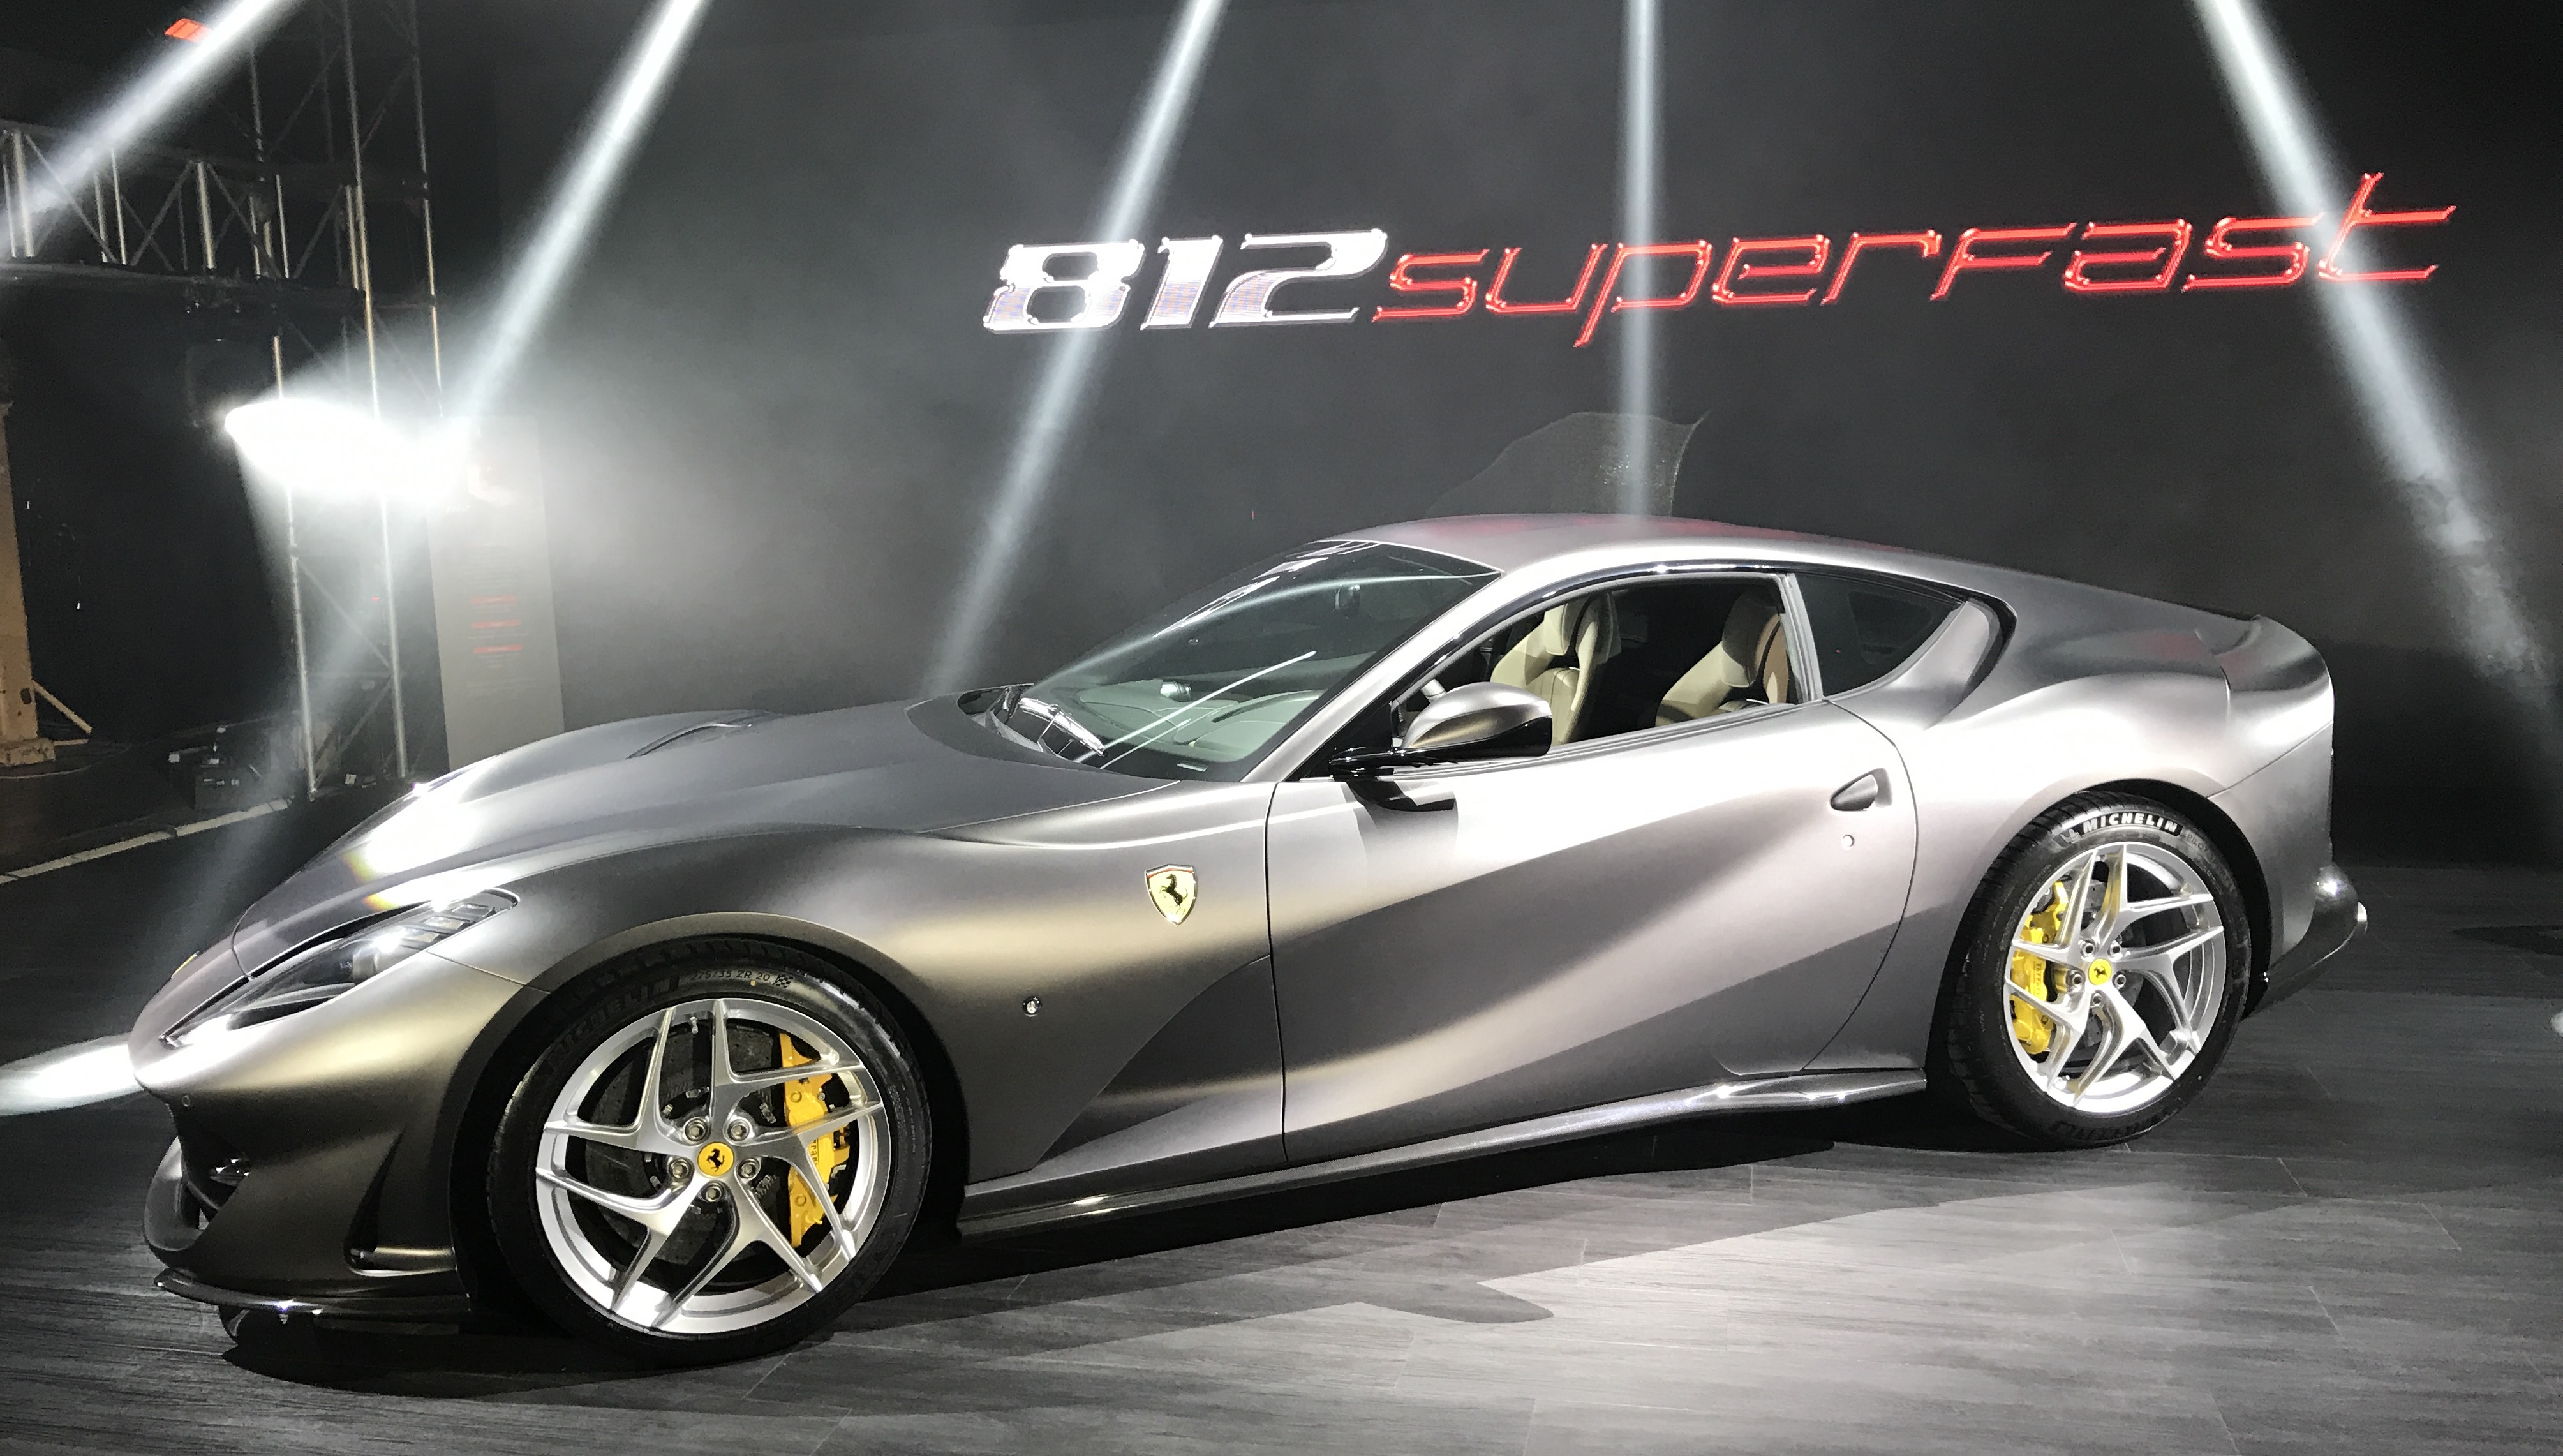 Ferrari 812 Superfast premieres in Australia - photos | CarAdvice